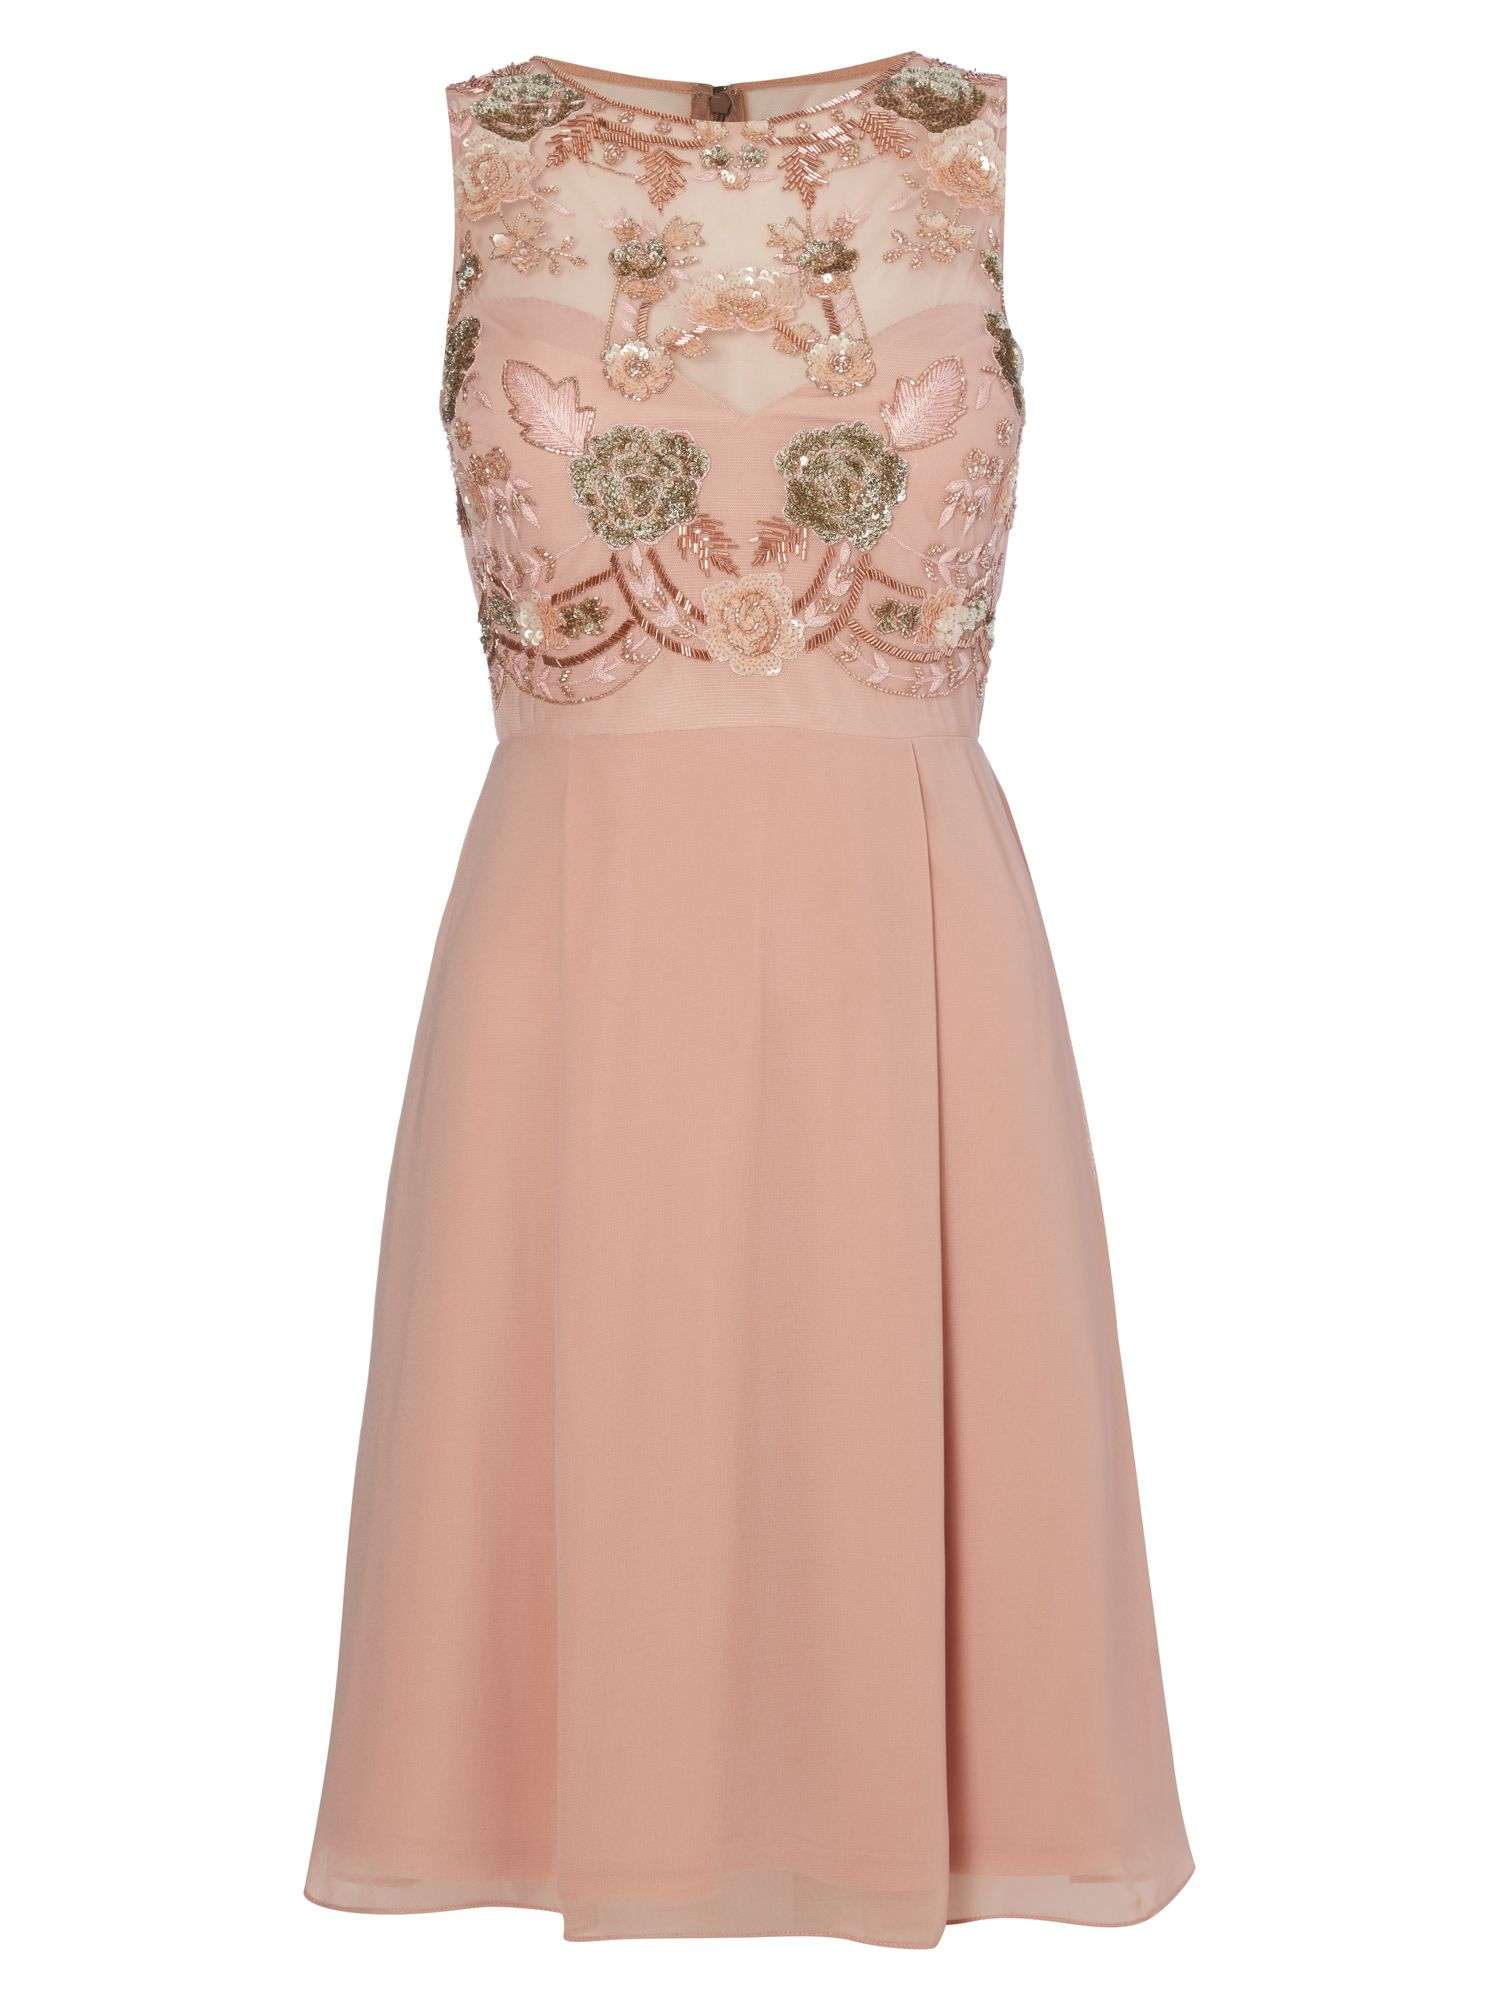 RAISHMA Blush Embellished Cocktail Dress, Pink